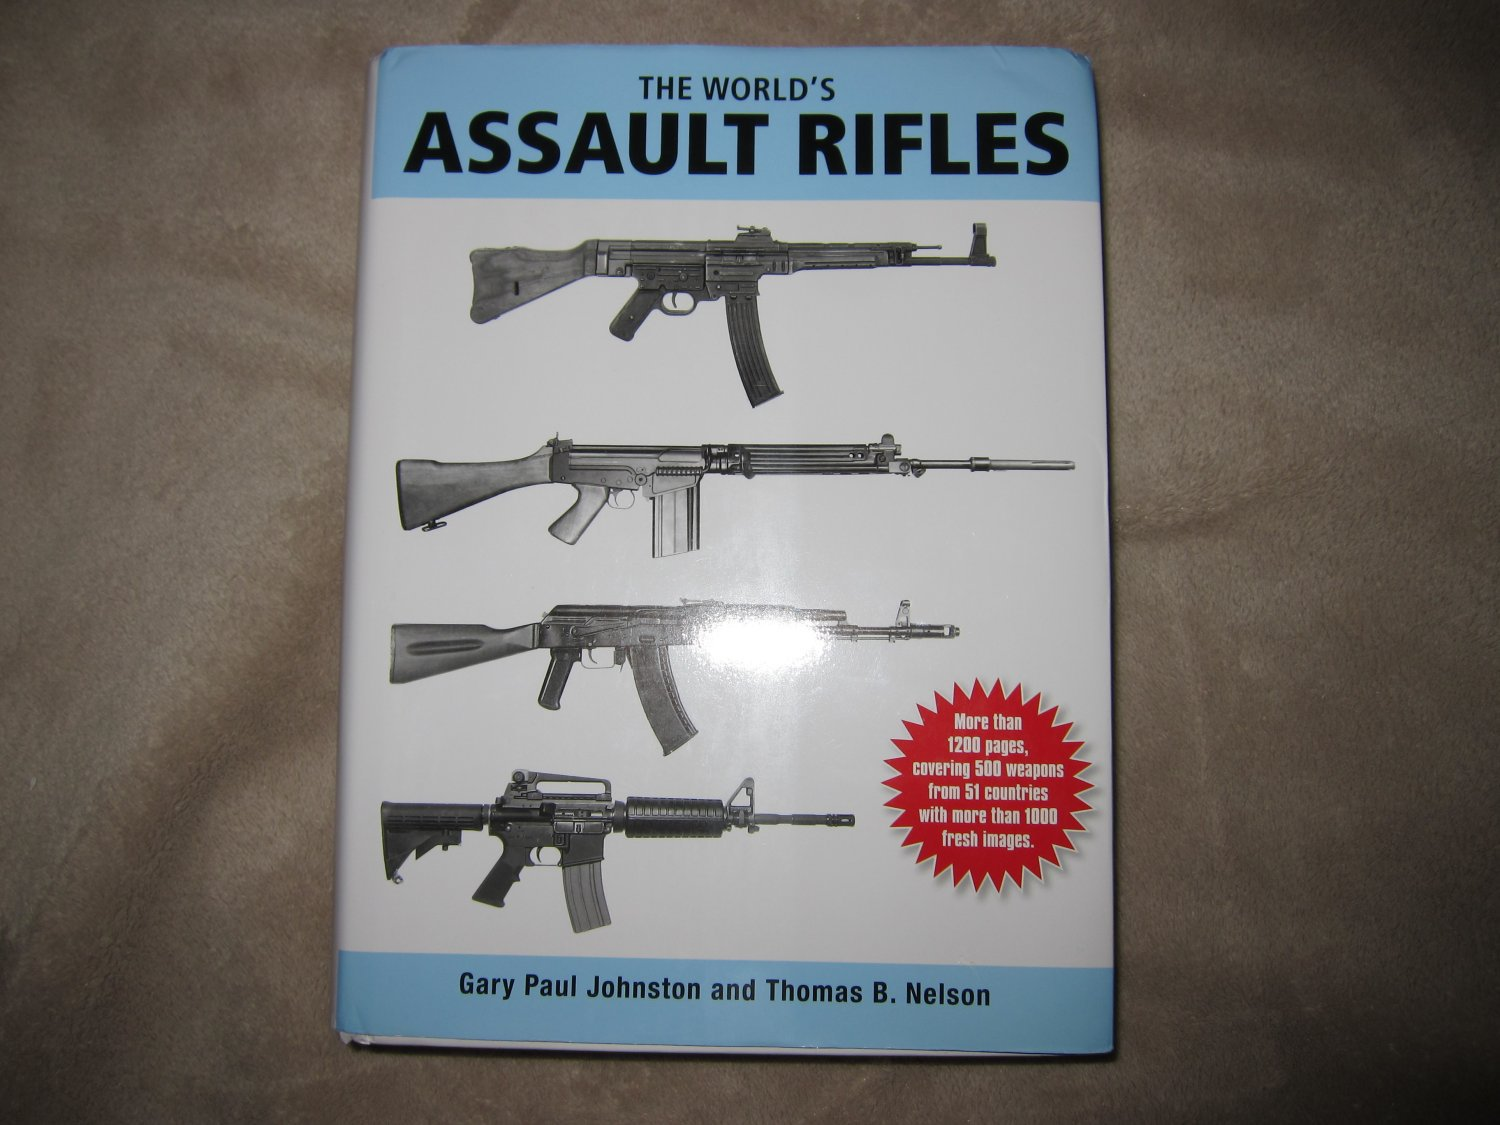 Assault Rifles of the World Book Gary Paul Johnston 1 <!  :en  >The Worlds Assault Rifles: Best and Most Complete Book on Military Infantry Assault Rifles (and Battle Rifles) Ever Written?  DefenseReview (DR) Highly Recommends It!<!  :  >